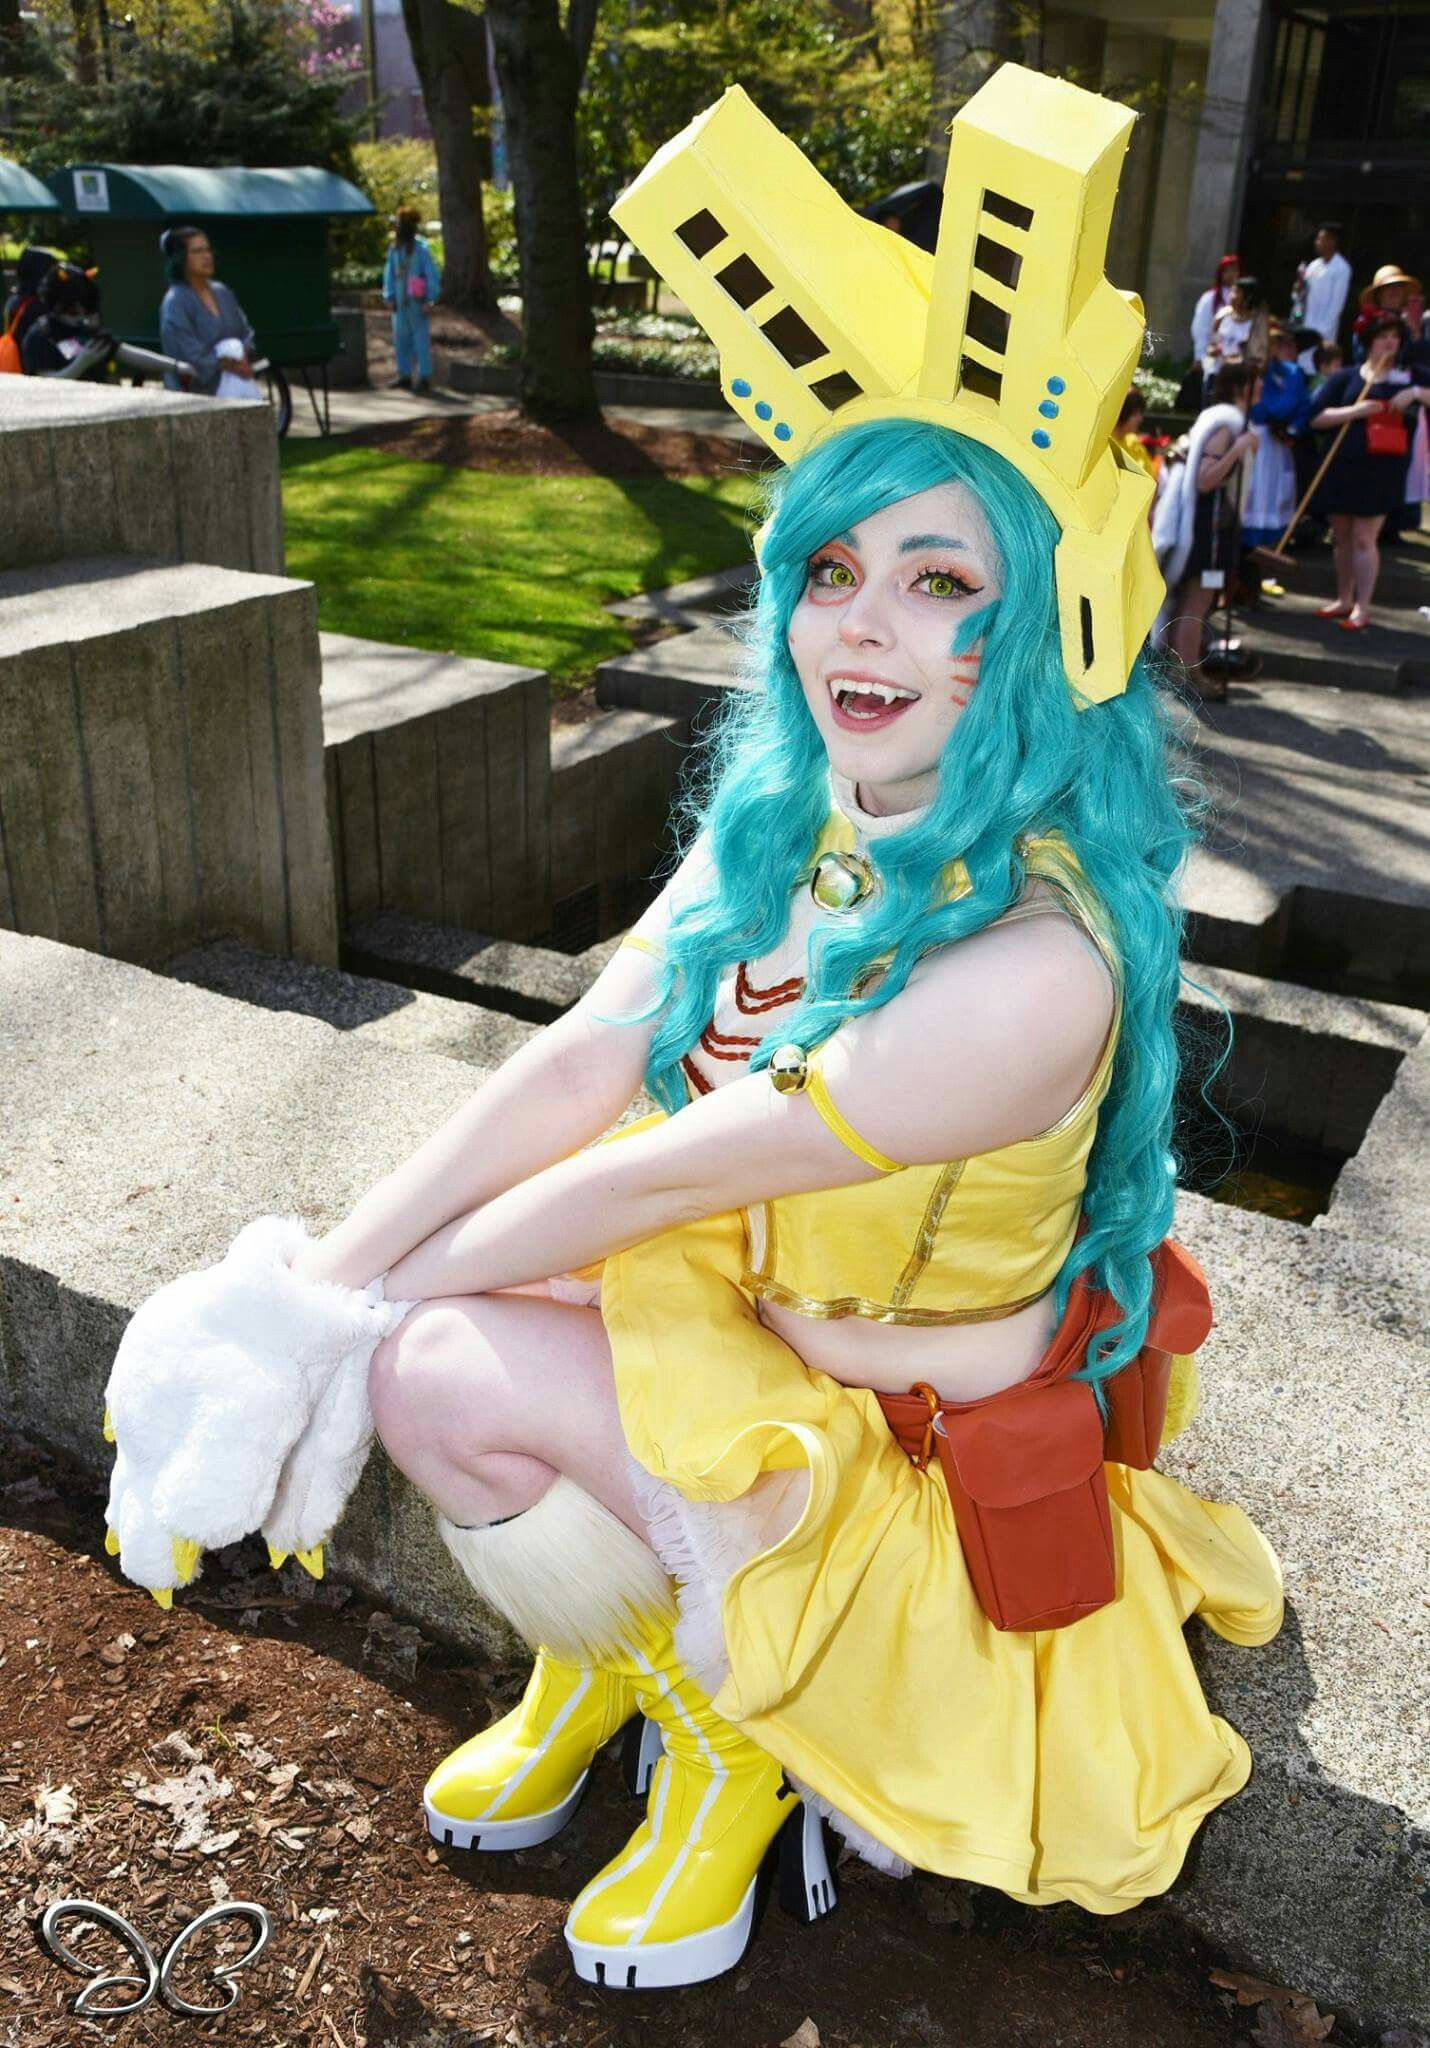 Pin by hannah mccune on cosplay   Cosplay anime, Cute ...